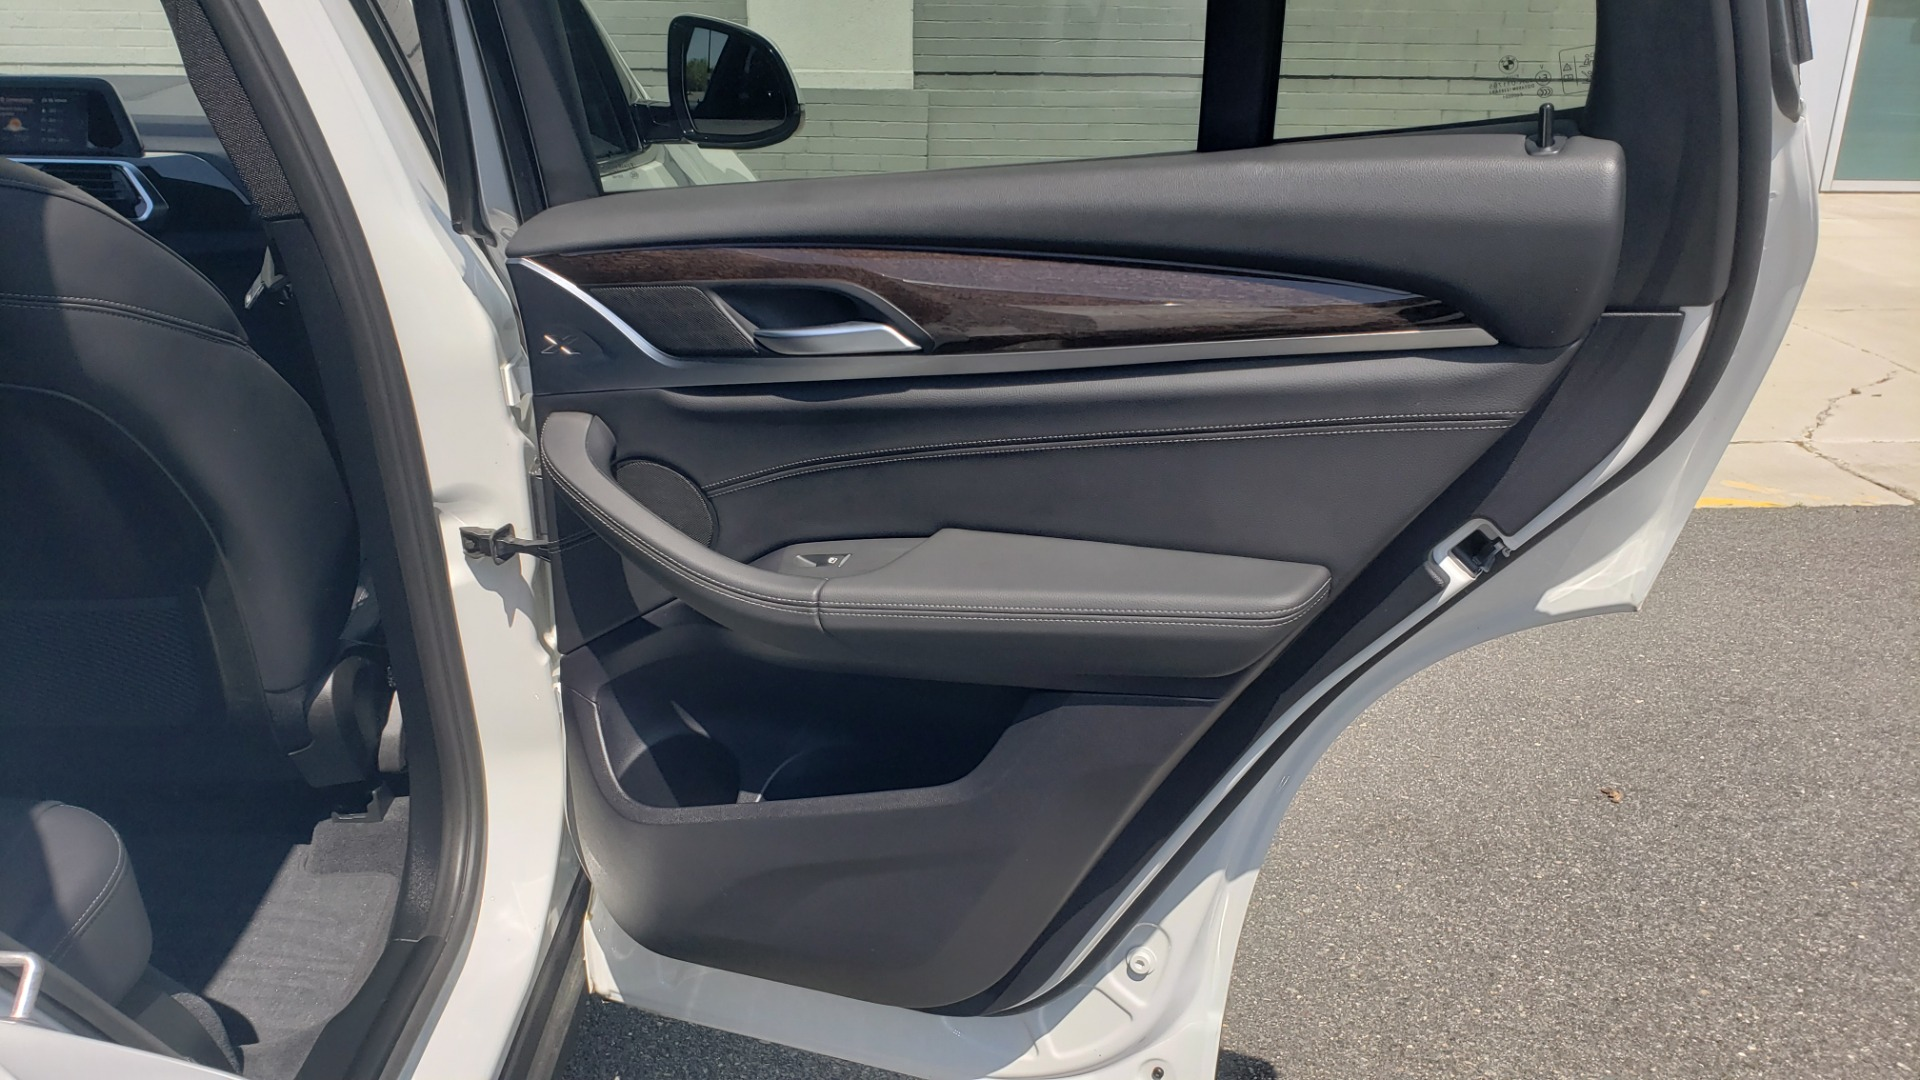 Used 2018 BMW X3 XDRIVE30I / CONV PKG / PANO-ROOF / HTD STS / REARVIEW for sale $33,995 at Formula Imports in Charlotte NC 28227 71